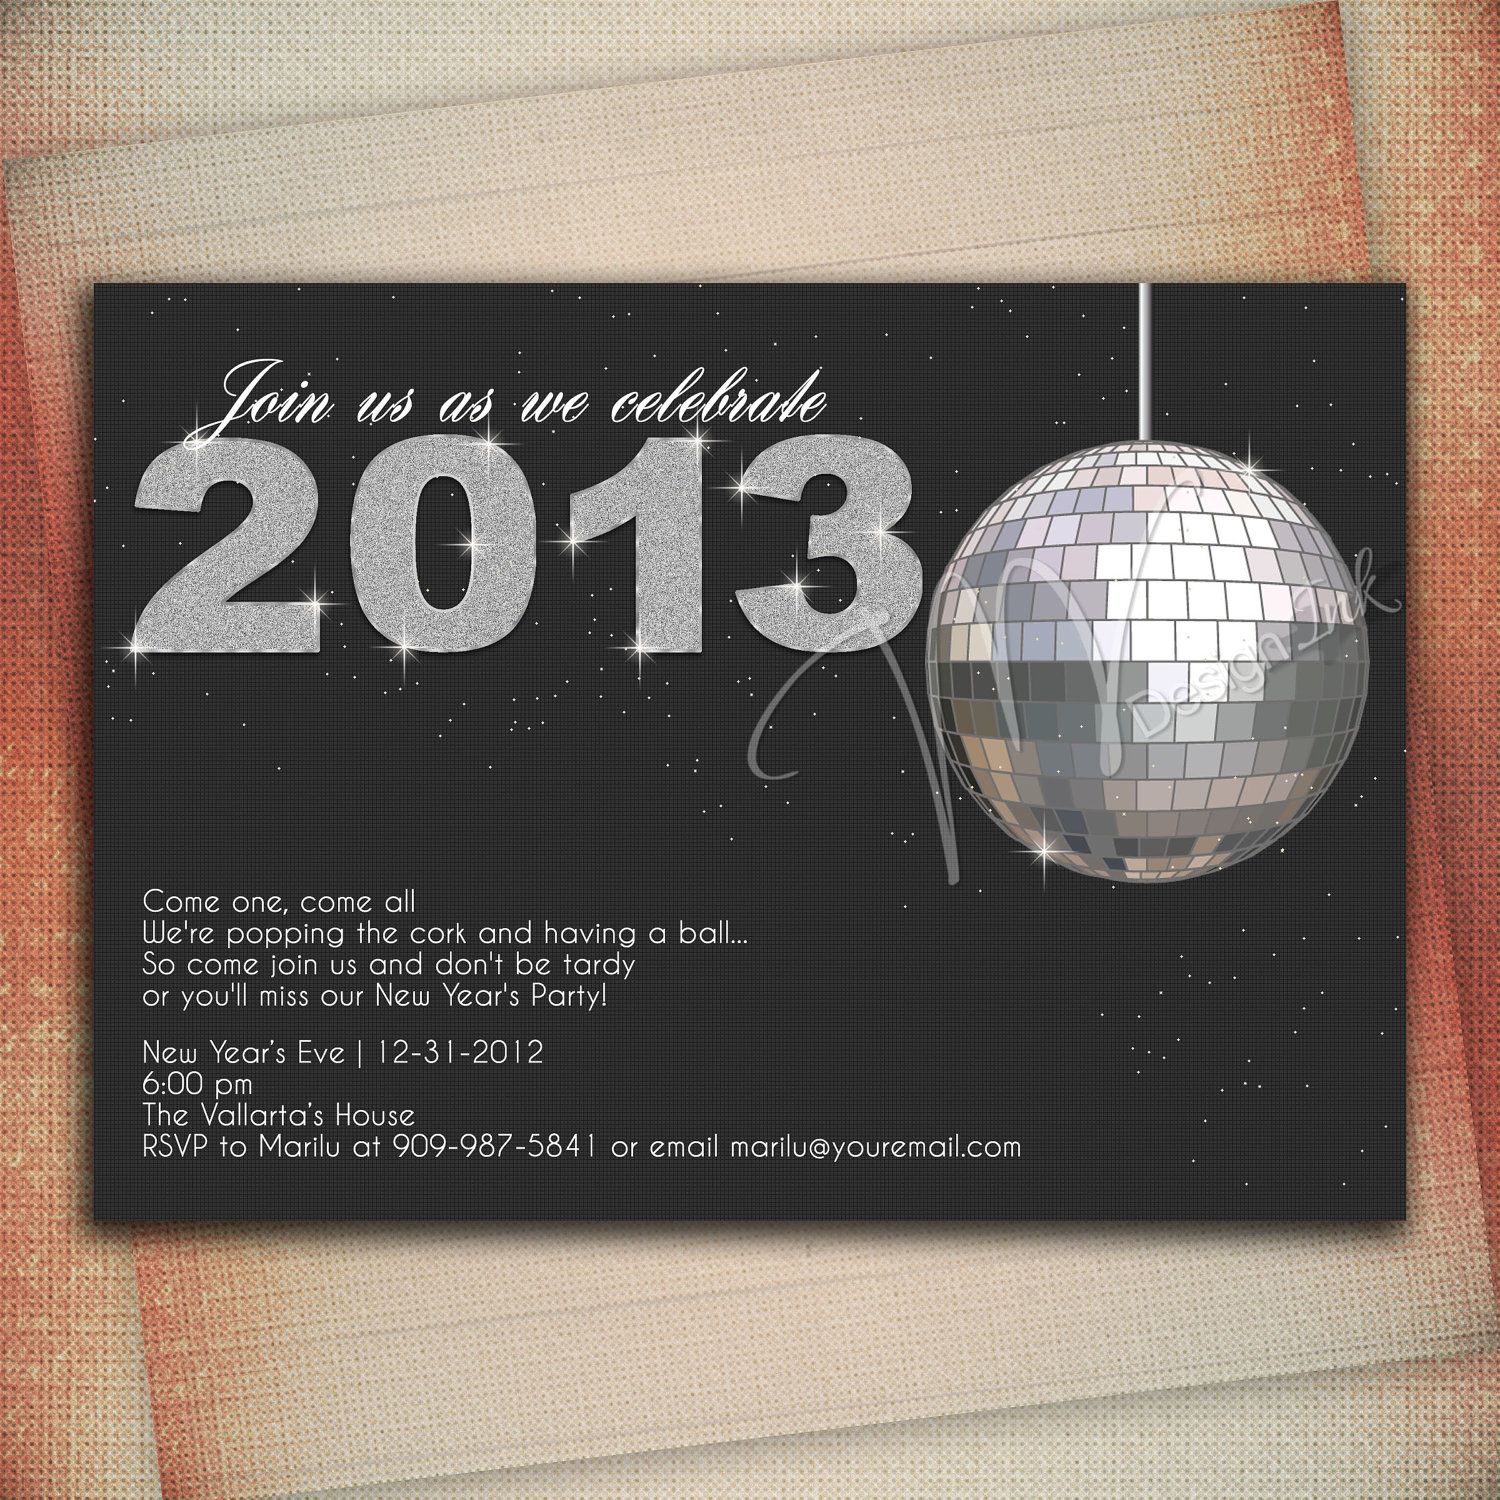 New Years Eve Party Invitation Crystal Ball Drop New